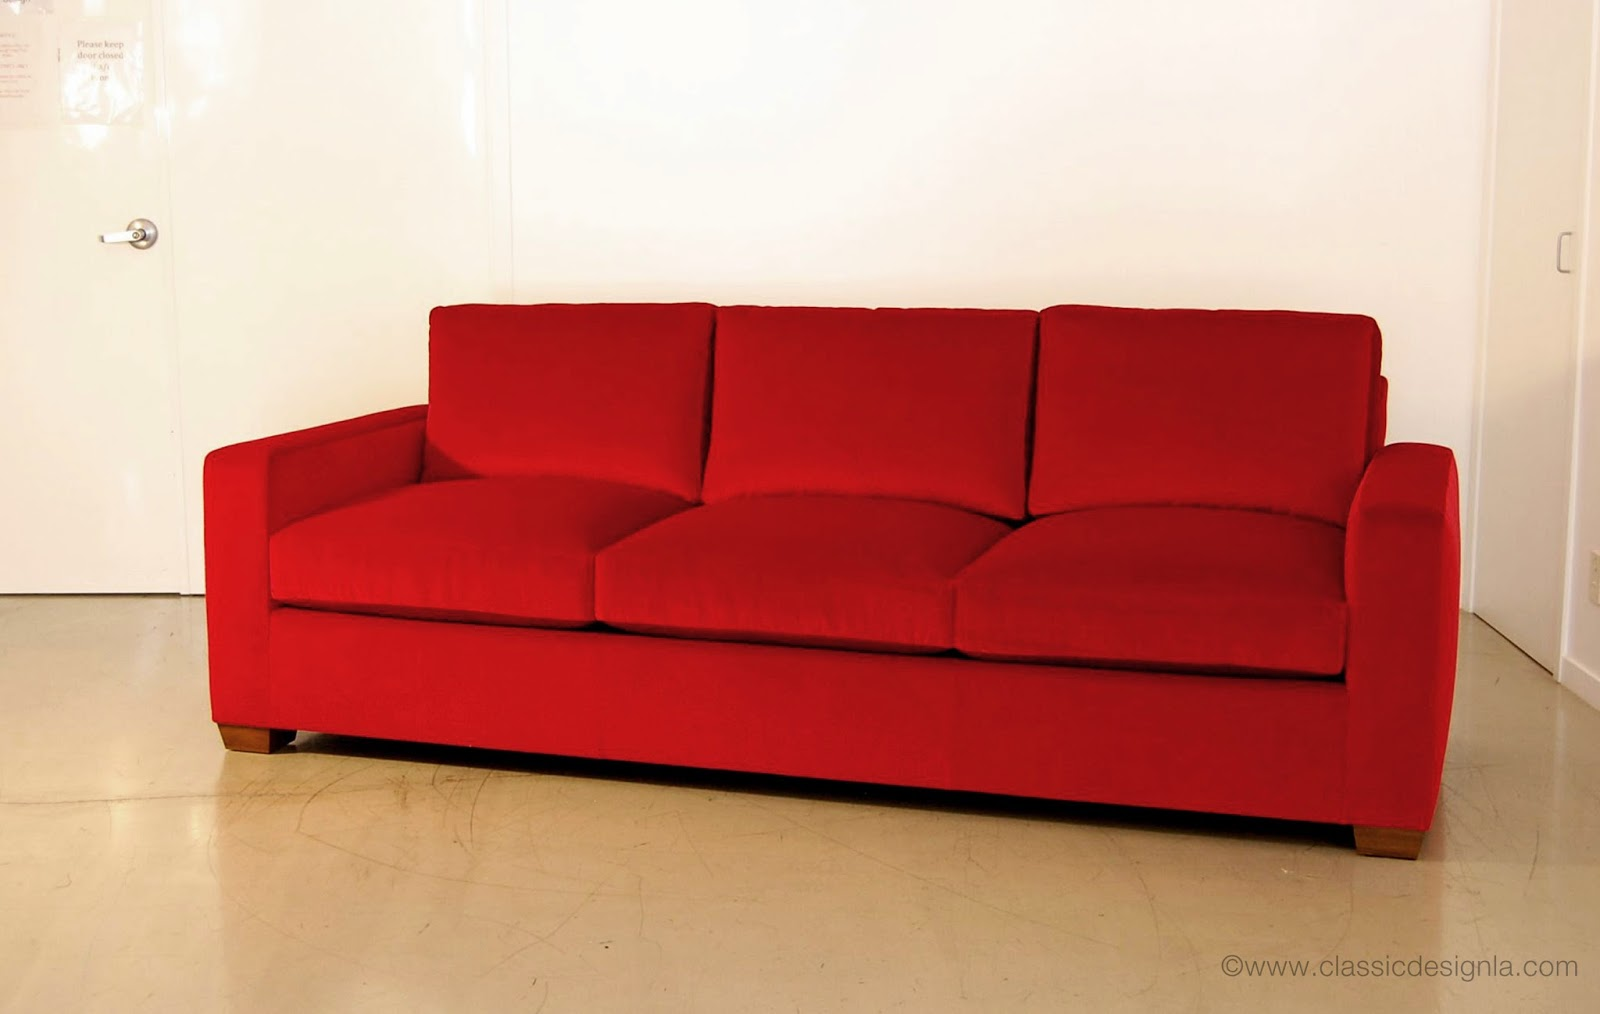 Classic Design Jean Michel Frank Sofa Series